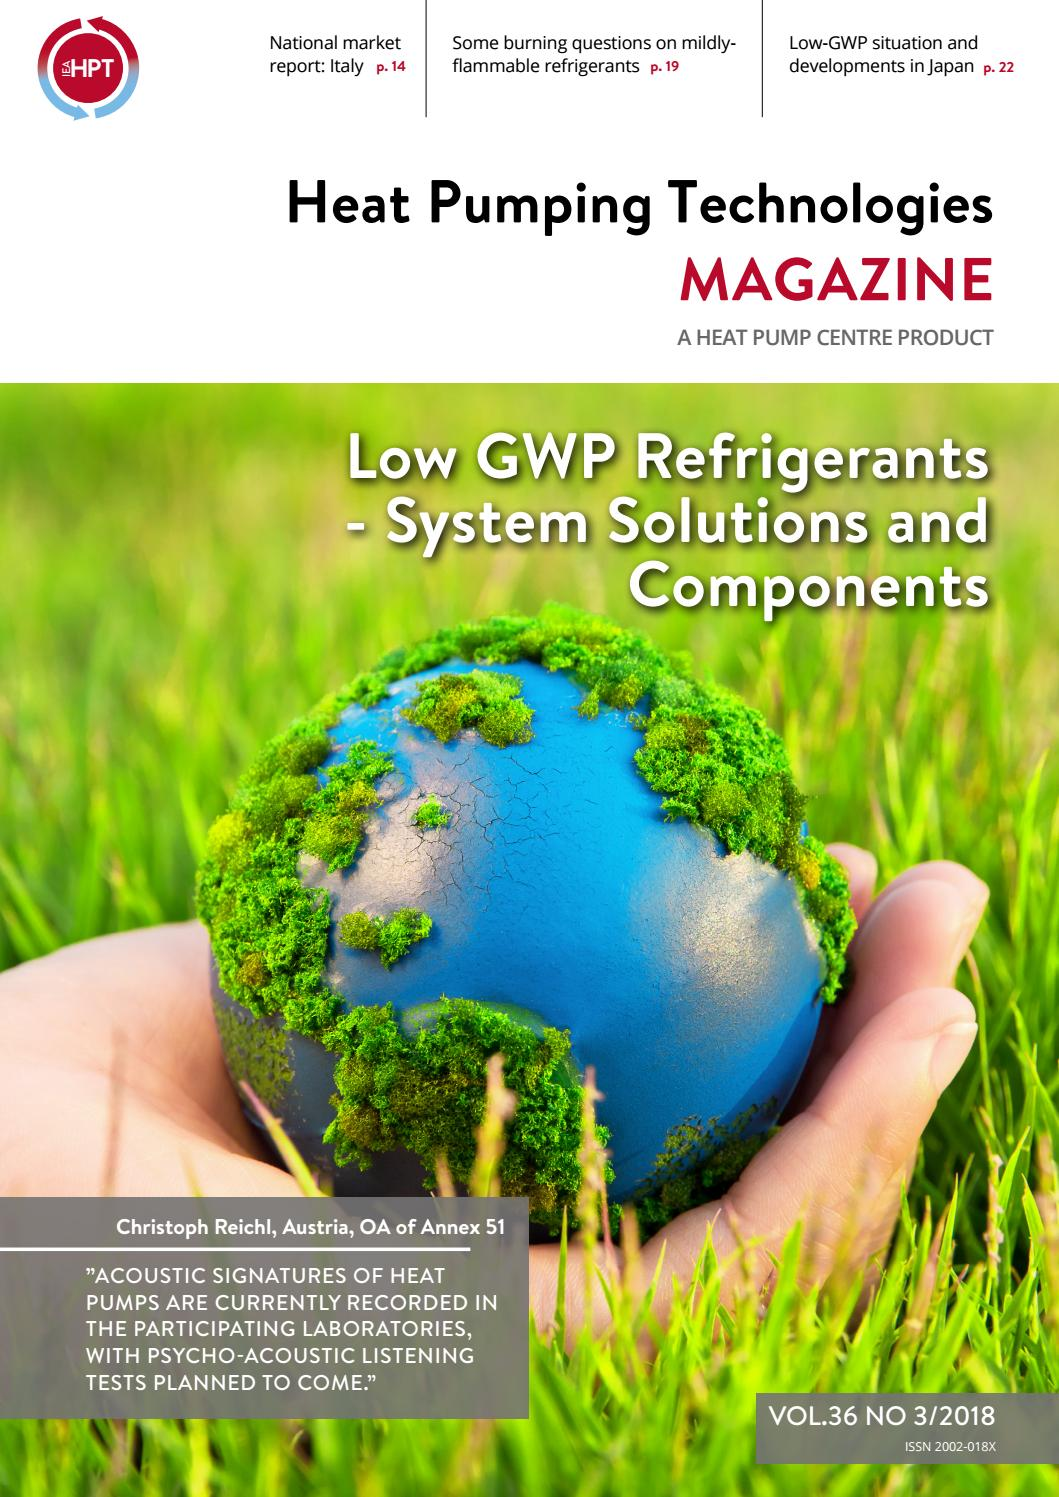 Pool Wärmepumpe Green Heat Inverter 10 5 Kw Heat Pumping Technologies Low Gwp Refrigerants Hpt Magazine Vol 36 No 3 2018